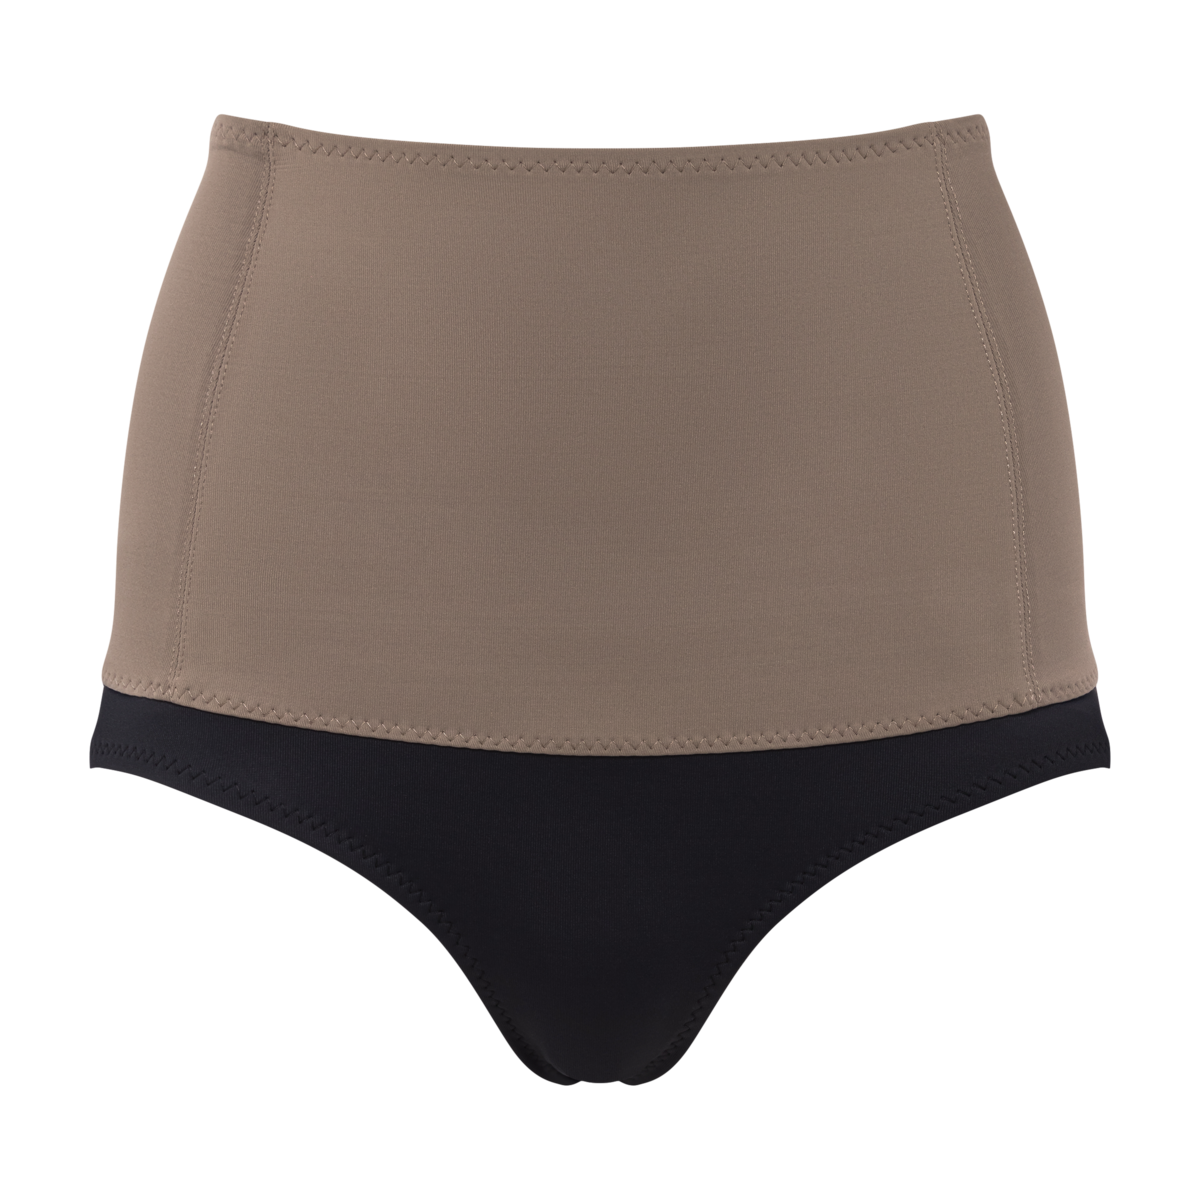 High waisted swimsuit product photography